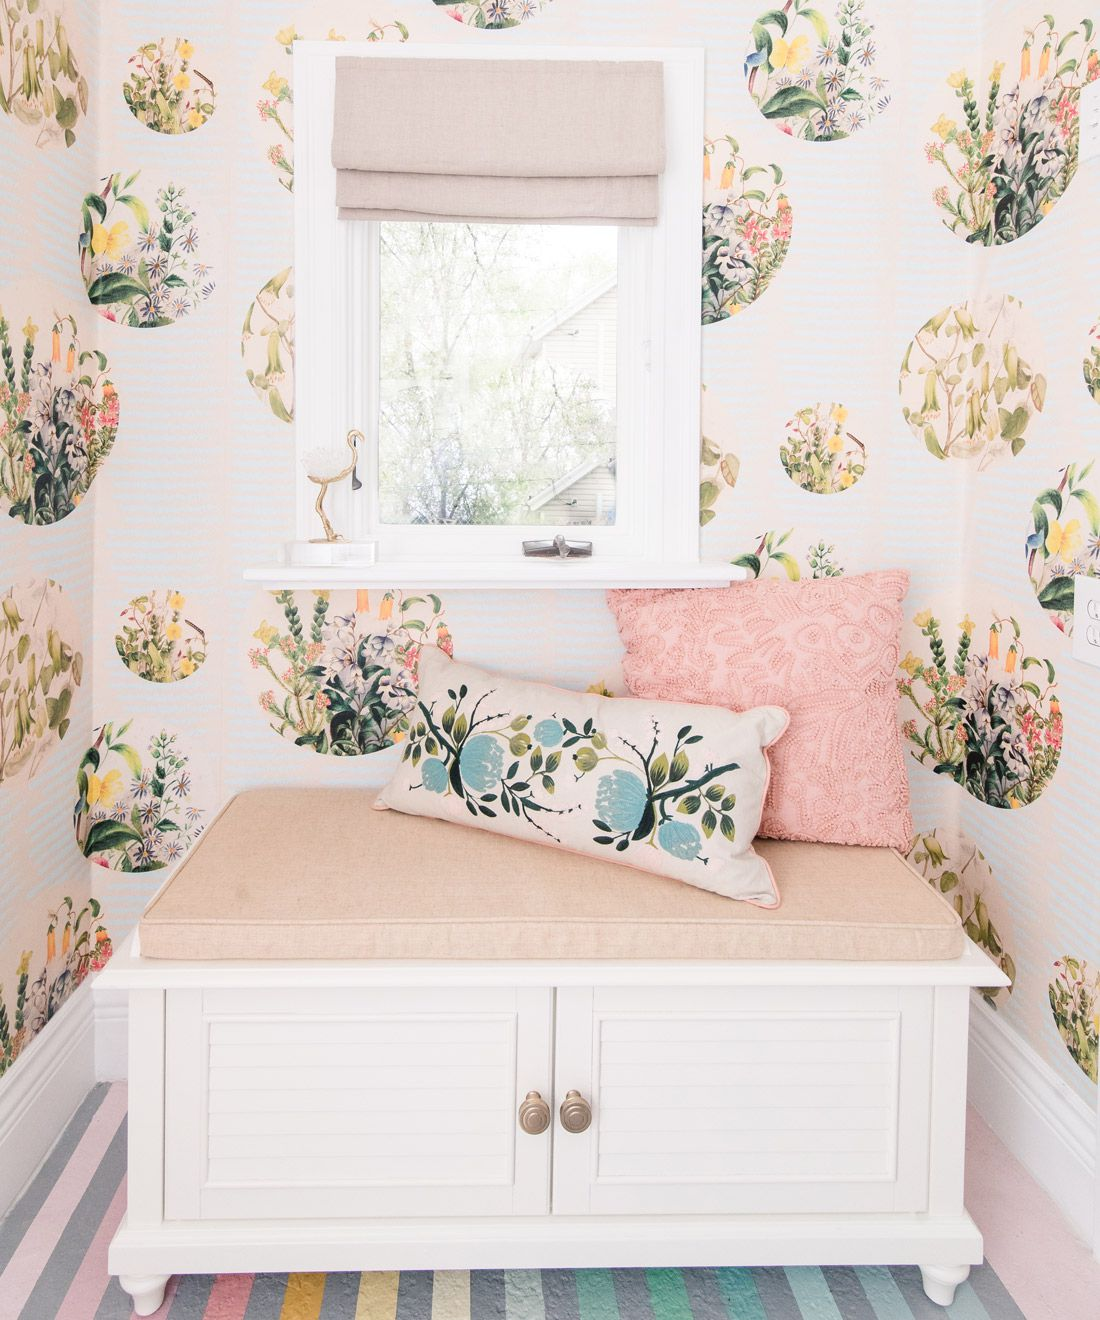 Euphemia 5 Wallpaper • Laundry Room Wallpaper • At Home With Ashley Wilson